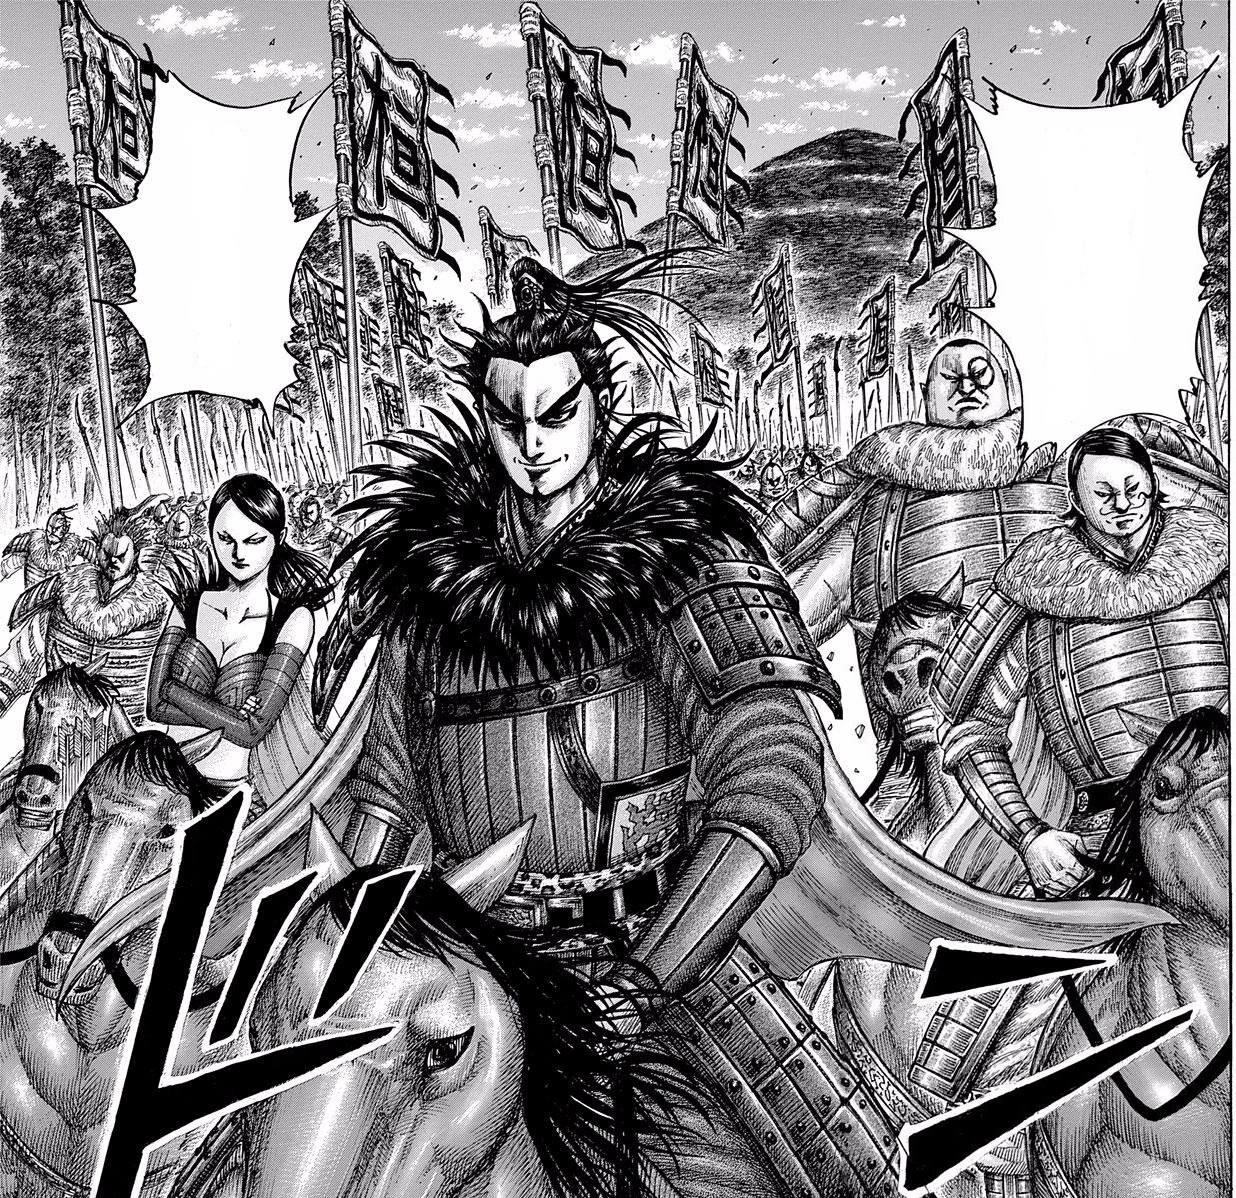 Kingdom Anime: [Manhwa] The Breaker: New Waves